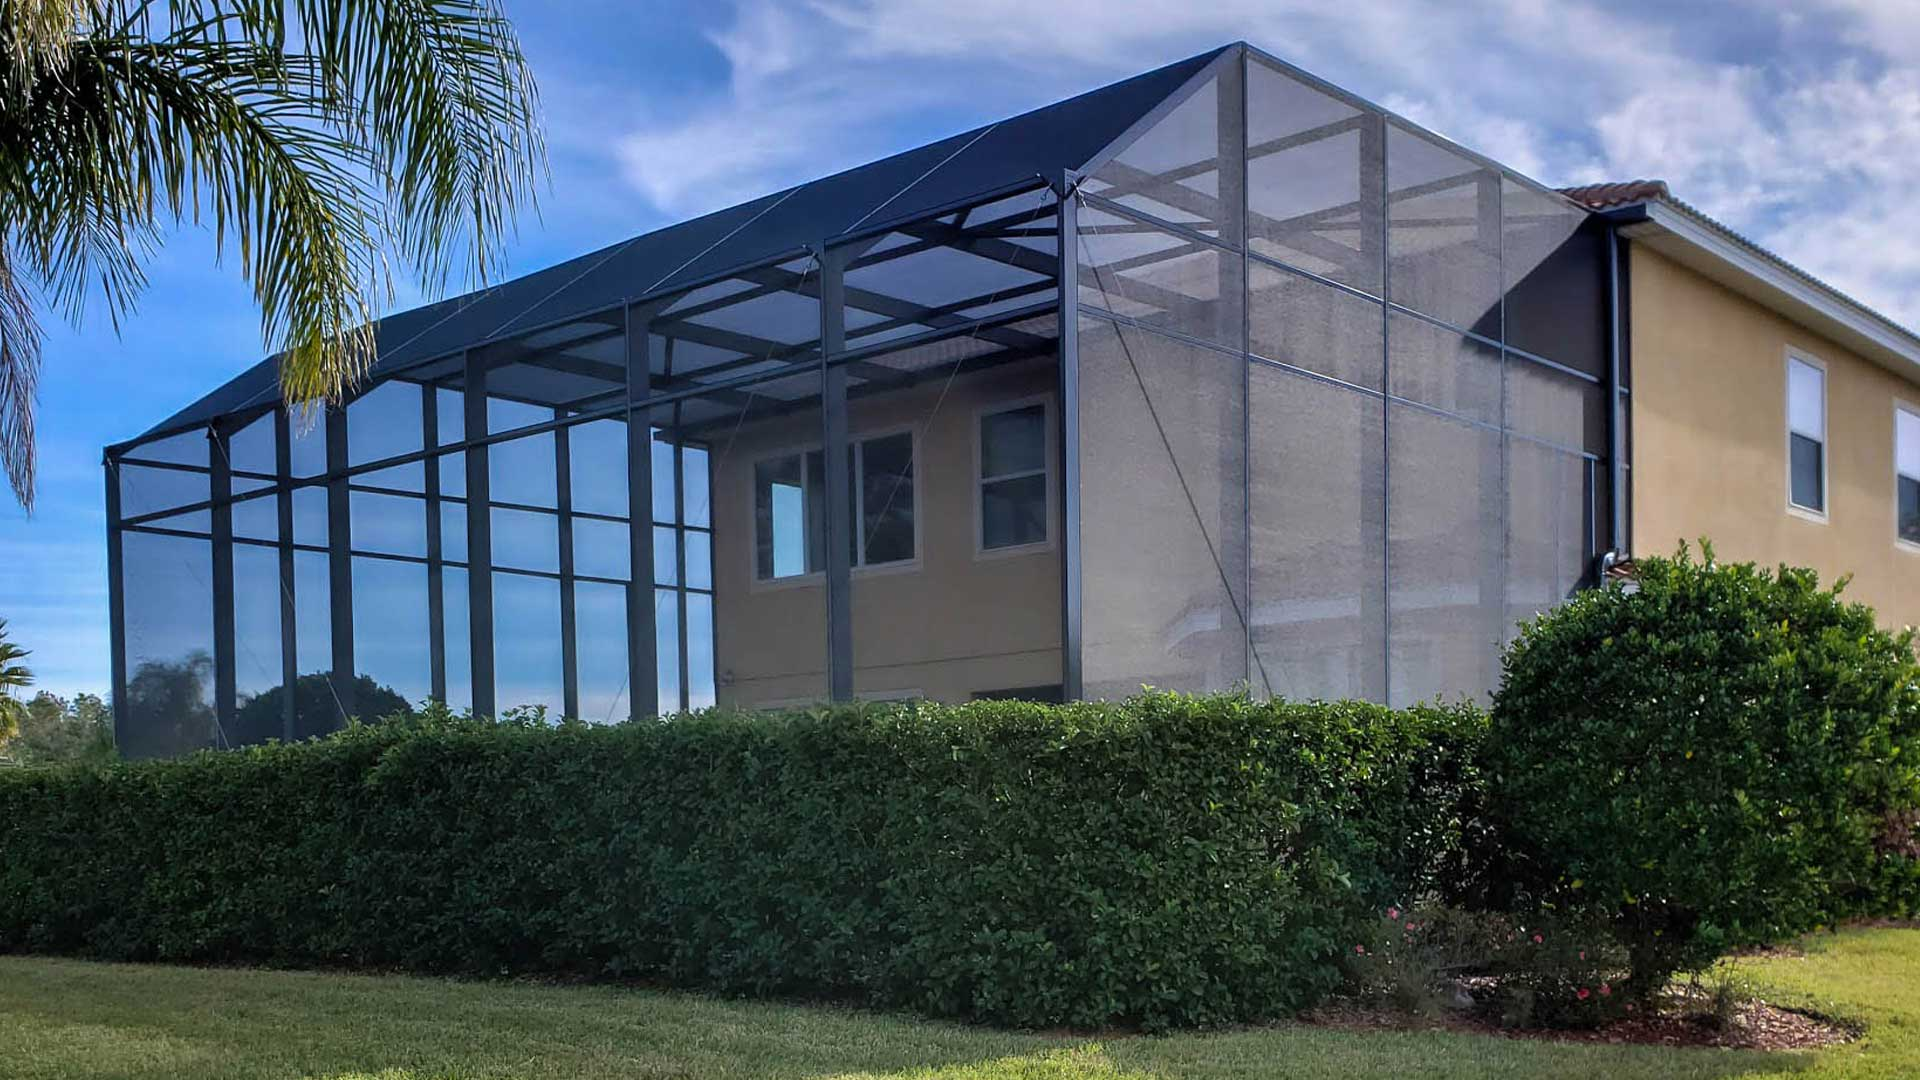 A two story screened lanai in the backyard of a residential property.